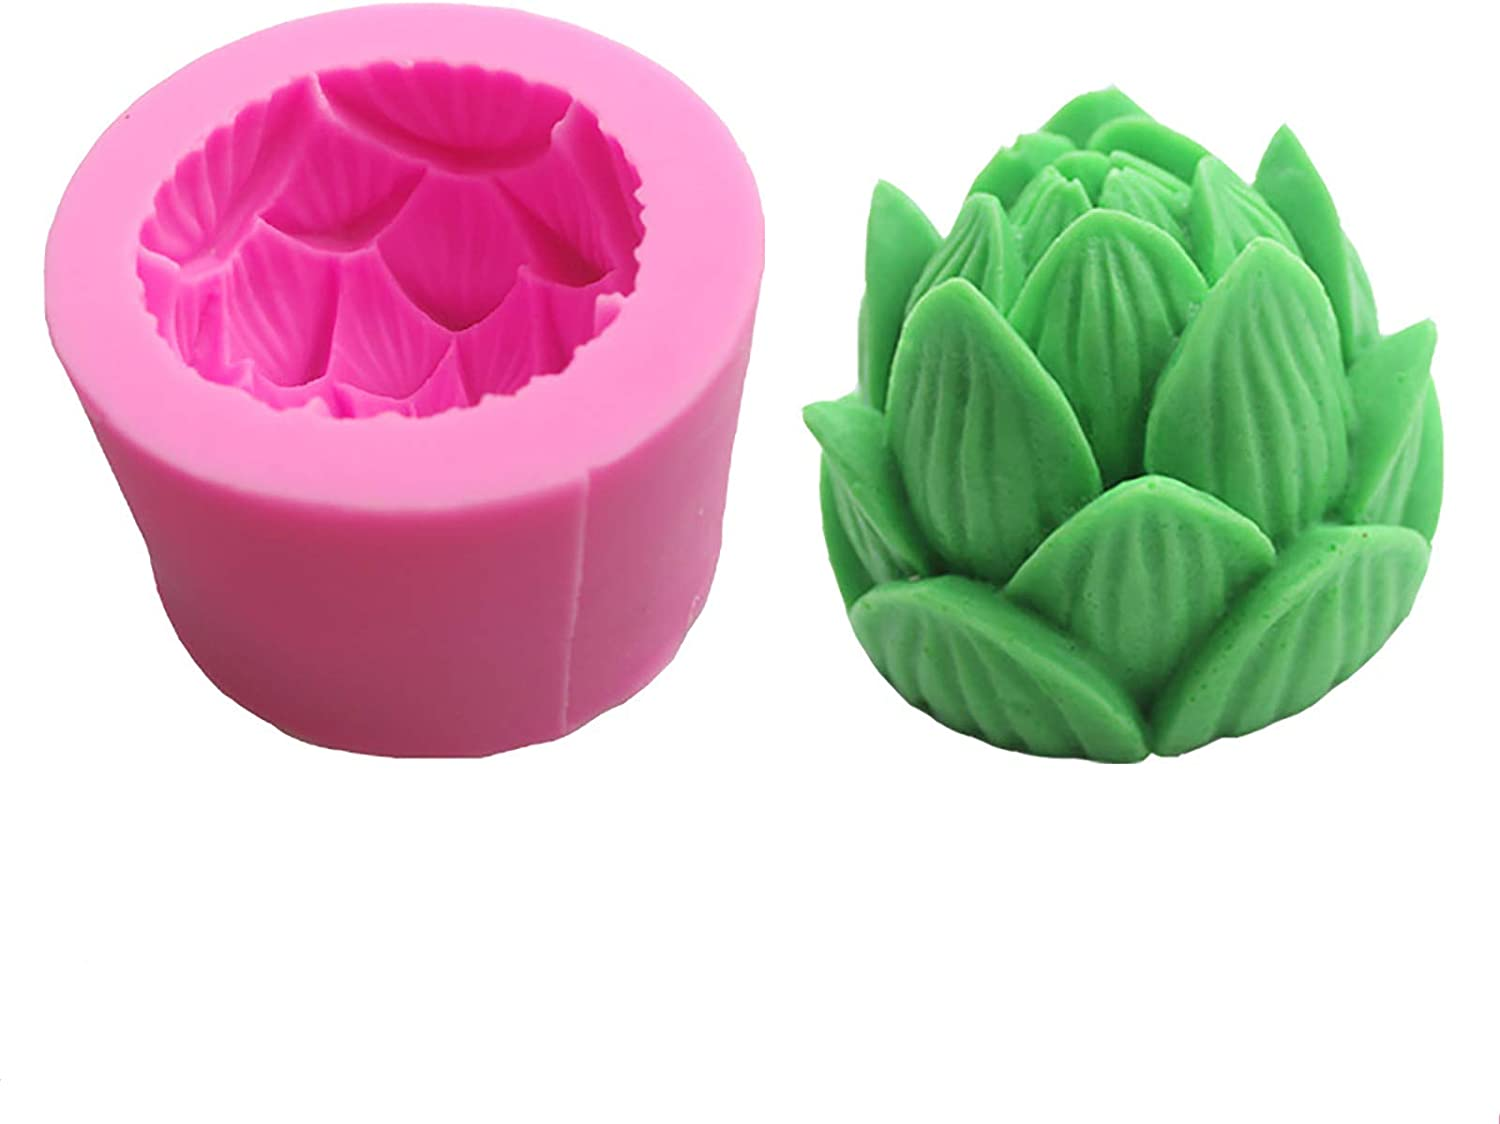 WTFWTF 3D lotus Silicone Mold,Food Grade Safe Silicone Mold, Used For Cake, Prepared Food, ChocolateFudgeResin CraftsScented Candles, Handmade Soap And Other DIY Creative Productions.